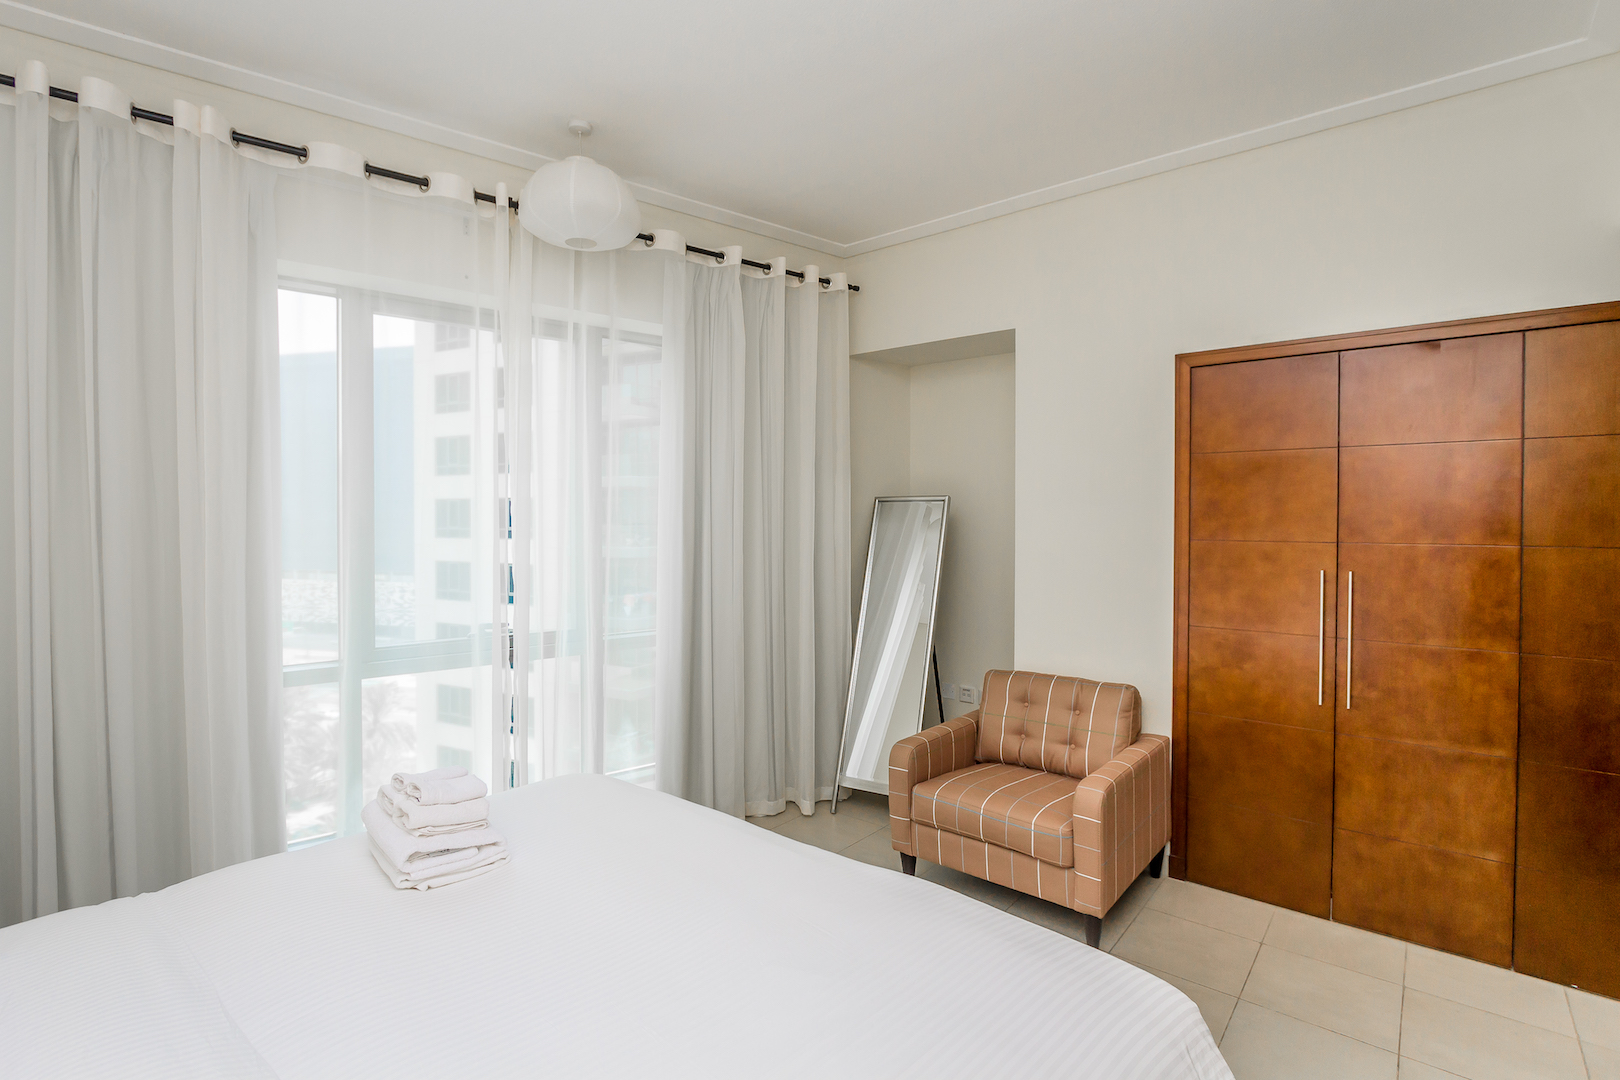 Home For Your Holiday, 1 Bed with Partial Burj Khalifa View, South Ridge, Downtown photo 21304042